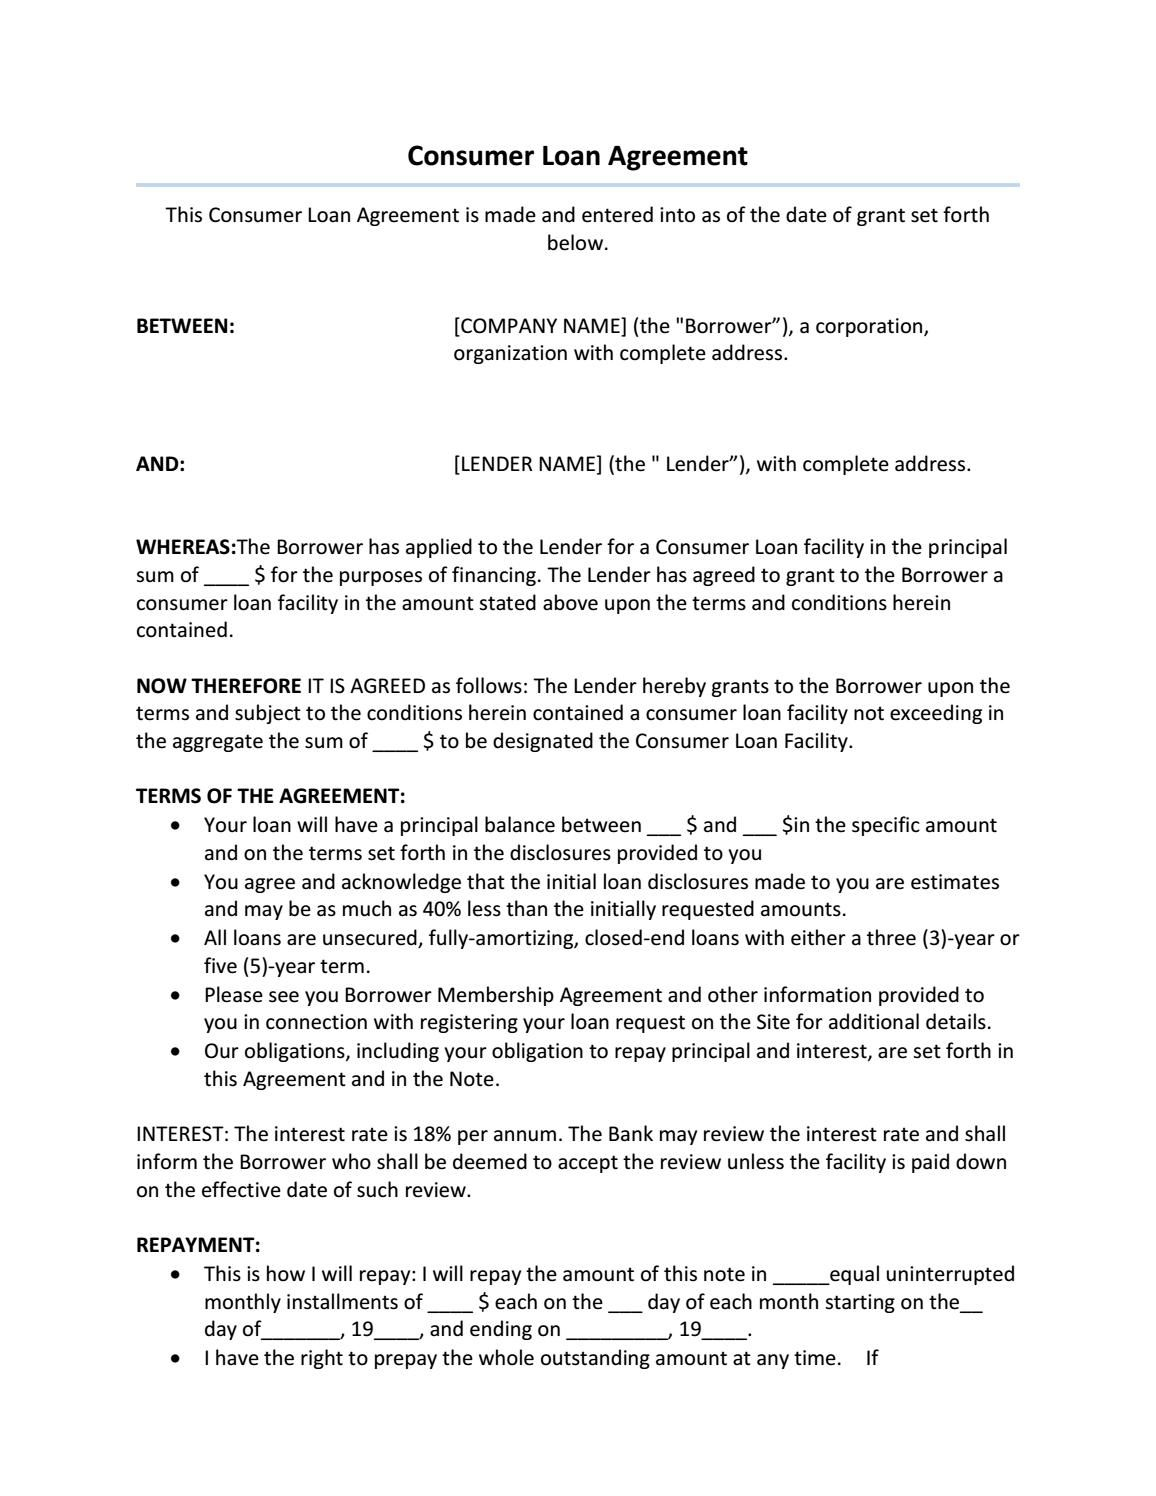 Consumer Loan Agreement Sample In 2018 Agreement Templates Pinterest